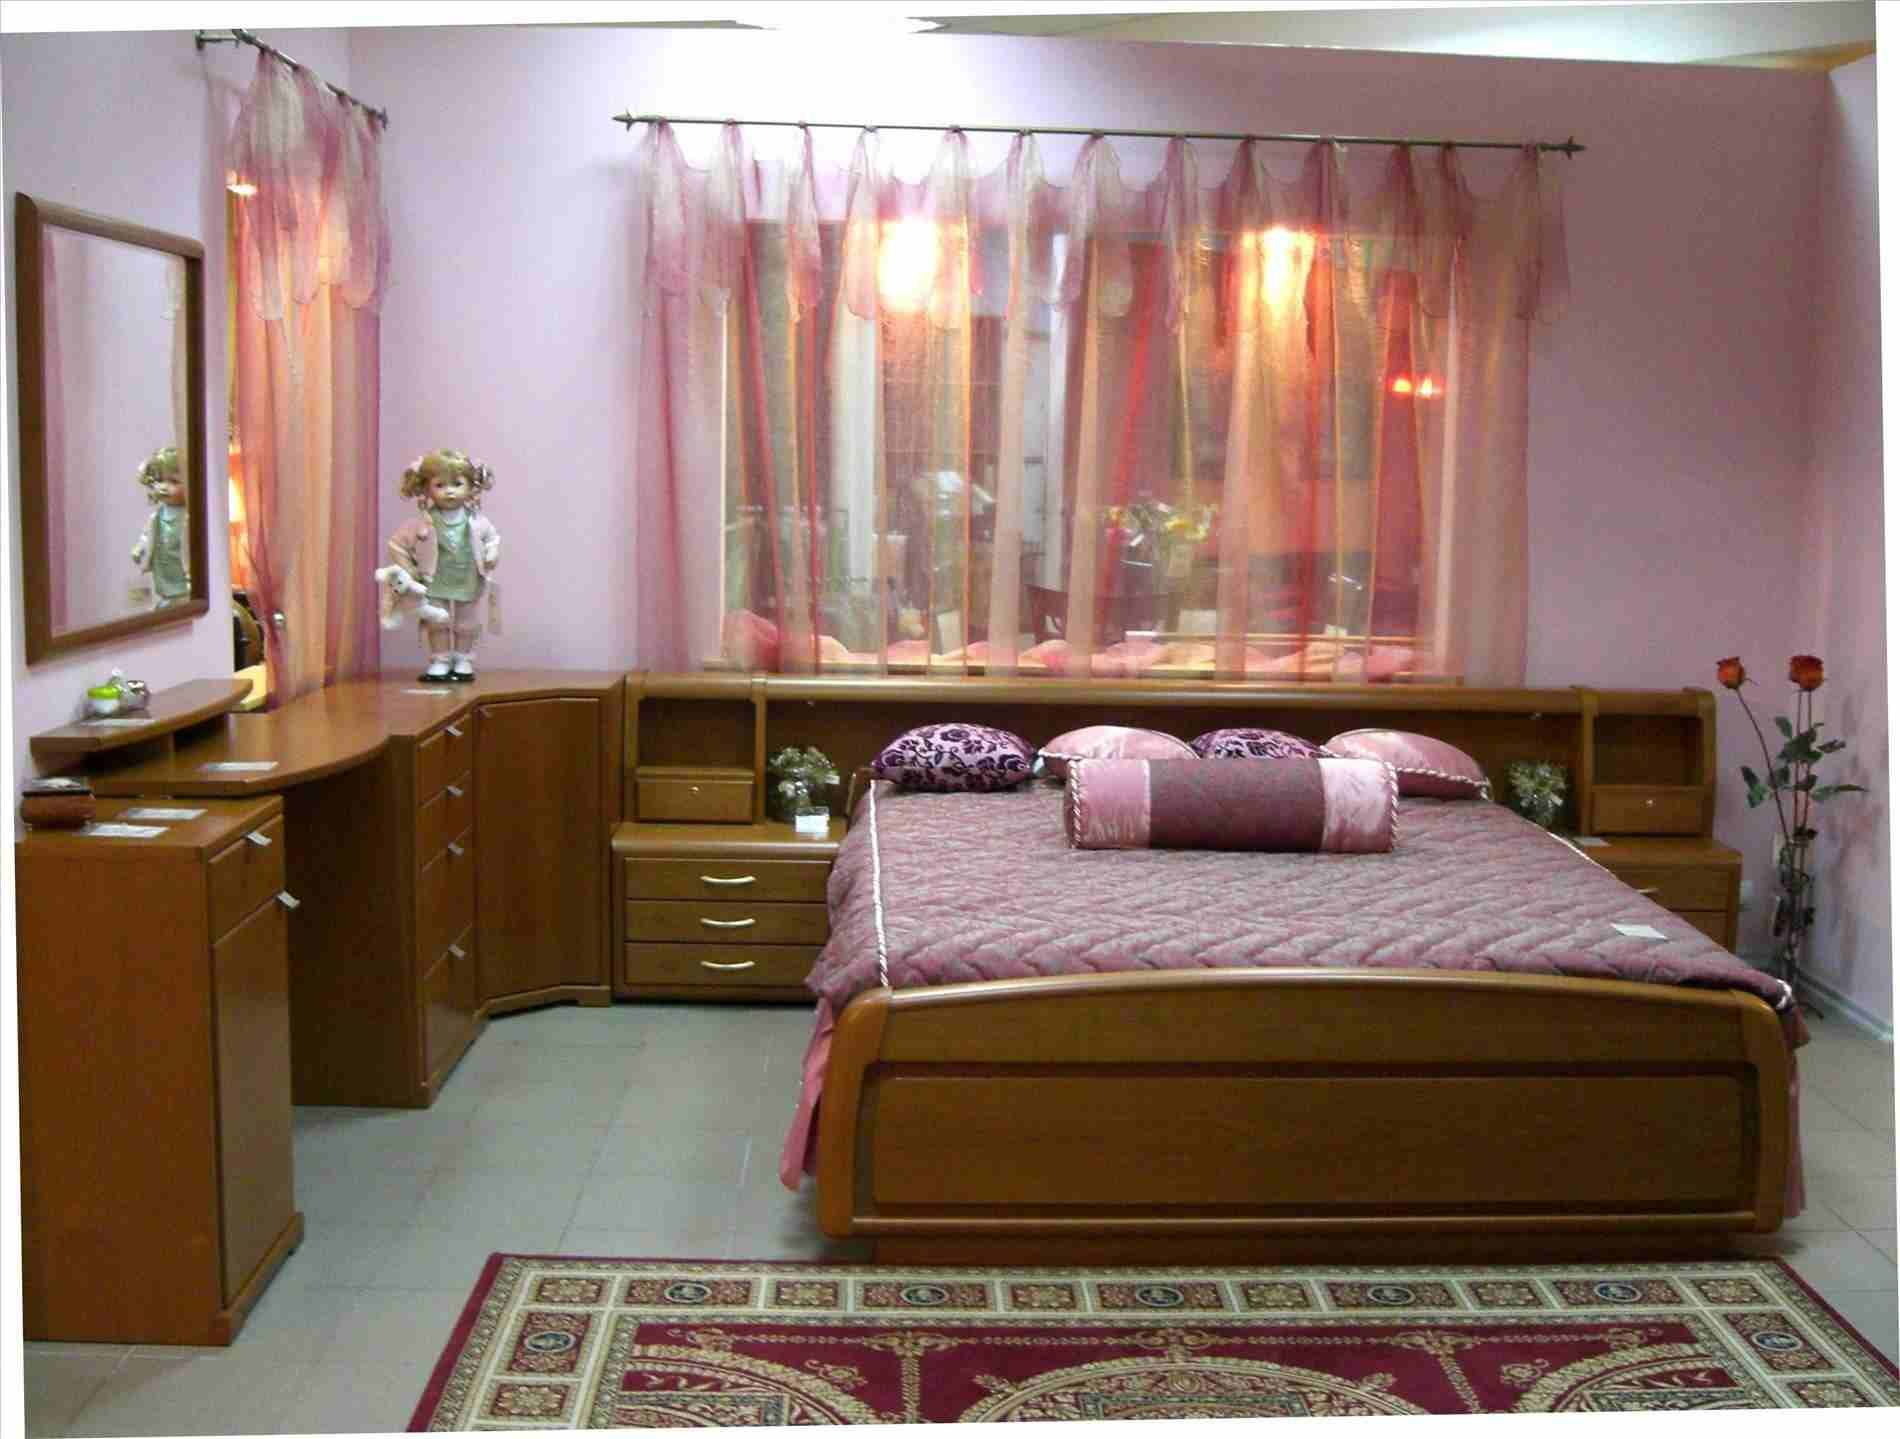 kerala bed room design amazing home interiorbedroom designs in kerala bedroom designs kerala modernbedroom designs in kerala bedroom designs kerala modern contemporary